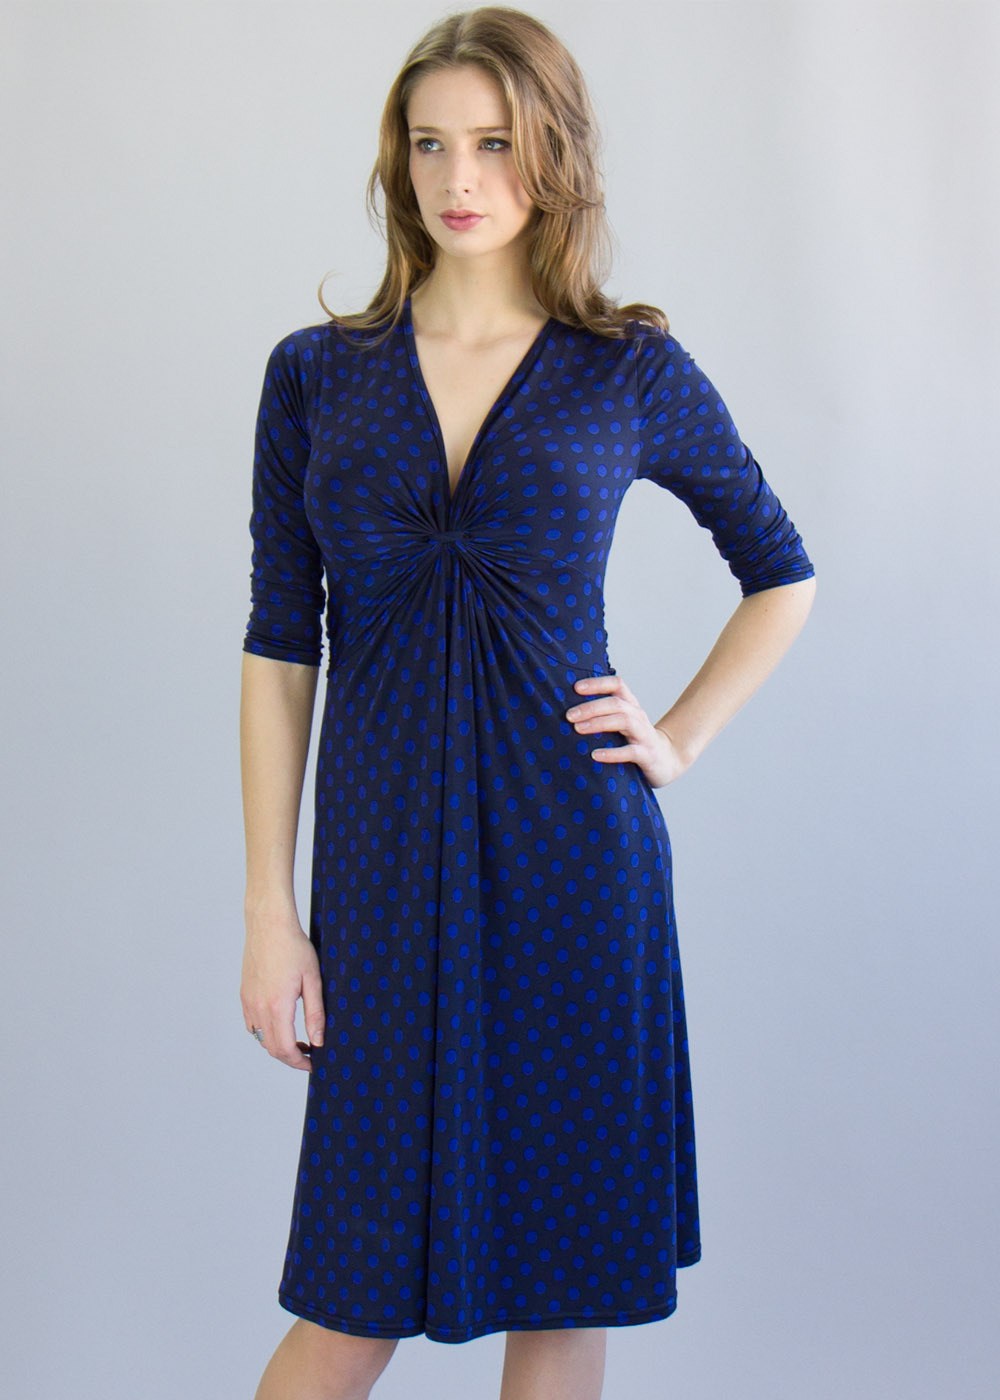 Belleville Dress - style: empire line; length: below the knee; neckline: low v-neck; fit: loose; pattern: polka dot; bust detail: knot twist front detail at bust; secondary colour: diva blue; predominant colour: navy; occasions: casual; fibres: polyester/polyamide - stretch; sleeve length: 3/4 length; sleeve style: standard; pattern type: fabric; pattern size: standard; texture group: jersey - stretchy/drapey; season: a/w 2013